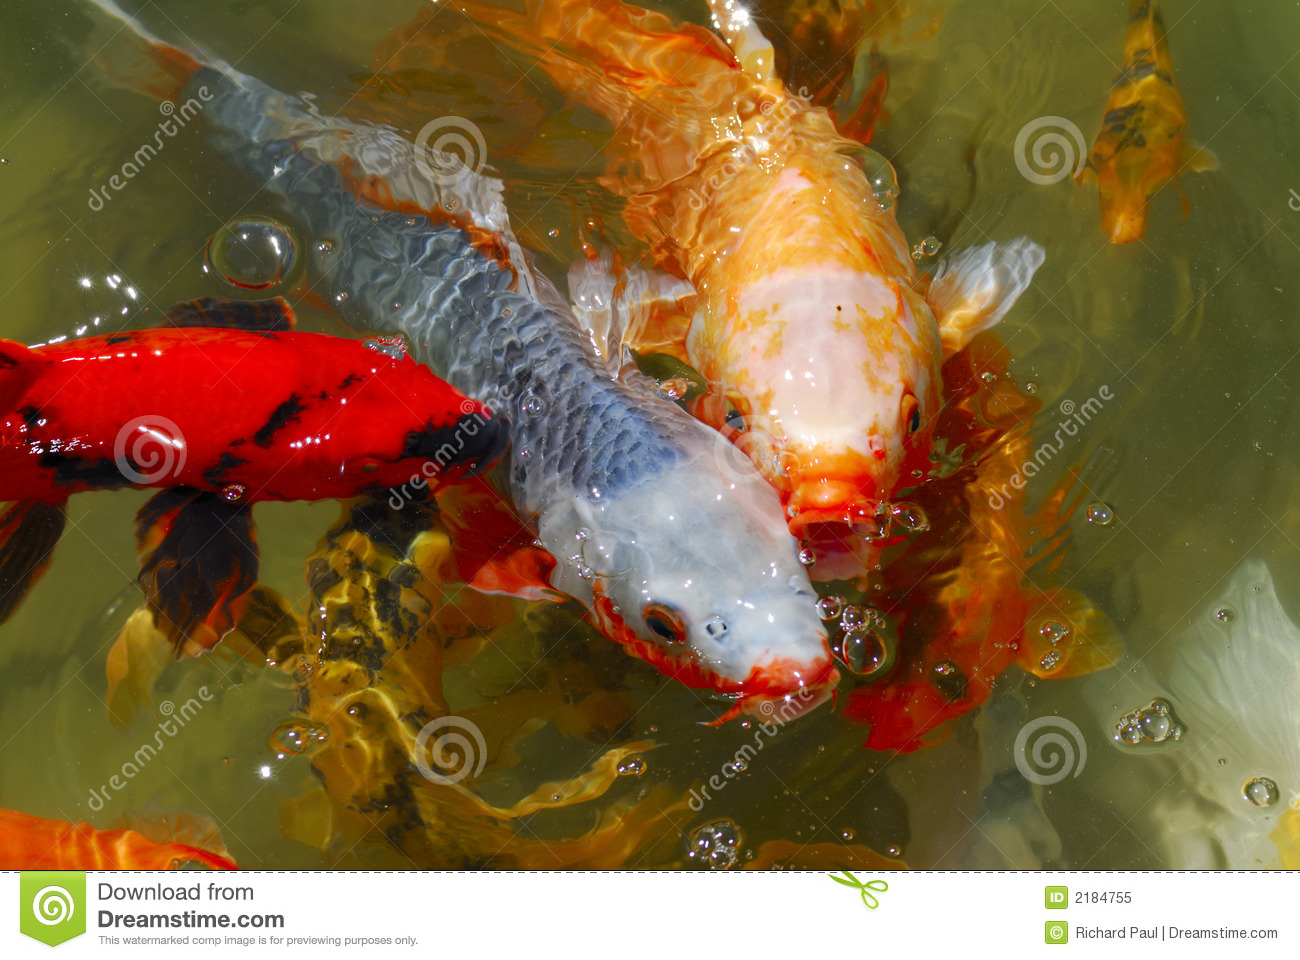 Japanese tea garden koi fish royalty free stock photo for Koi pond japanese tea garden san francisco